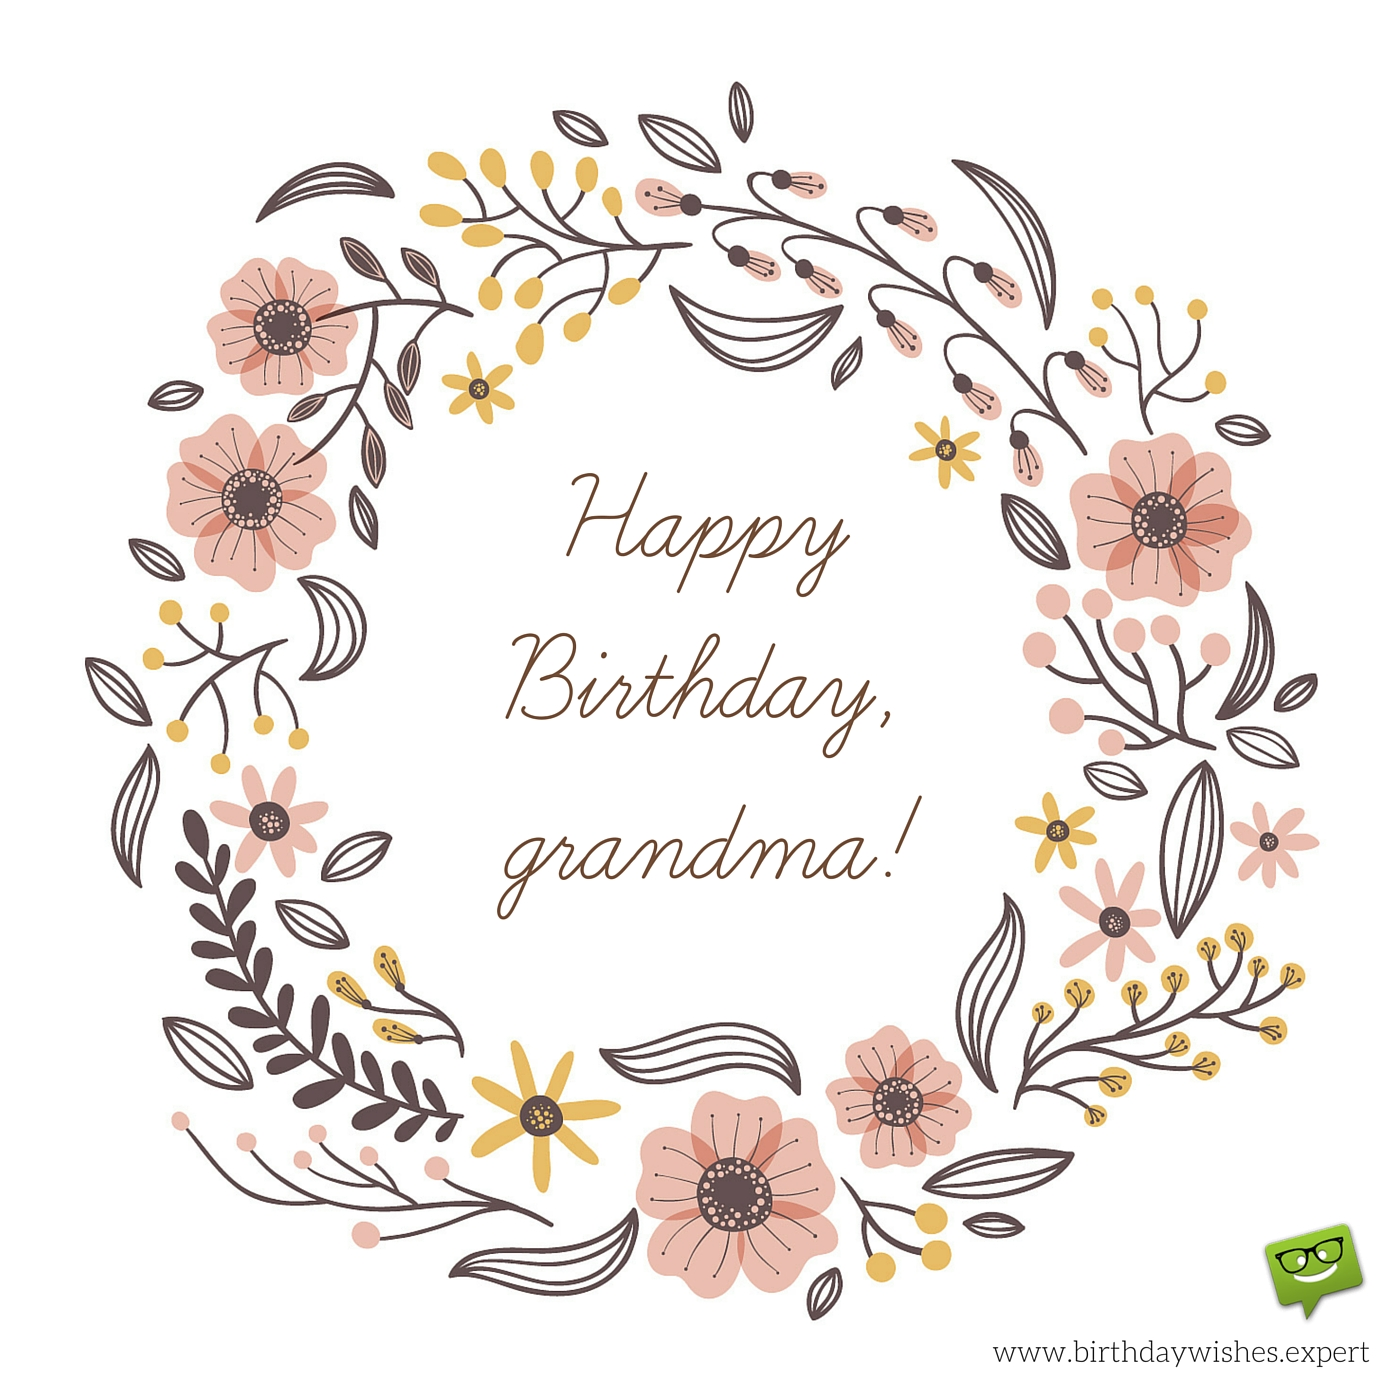 drawing of birthday greeting cards ; 75eec314865178a0806c5573fe9d347e